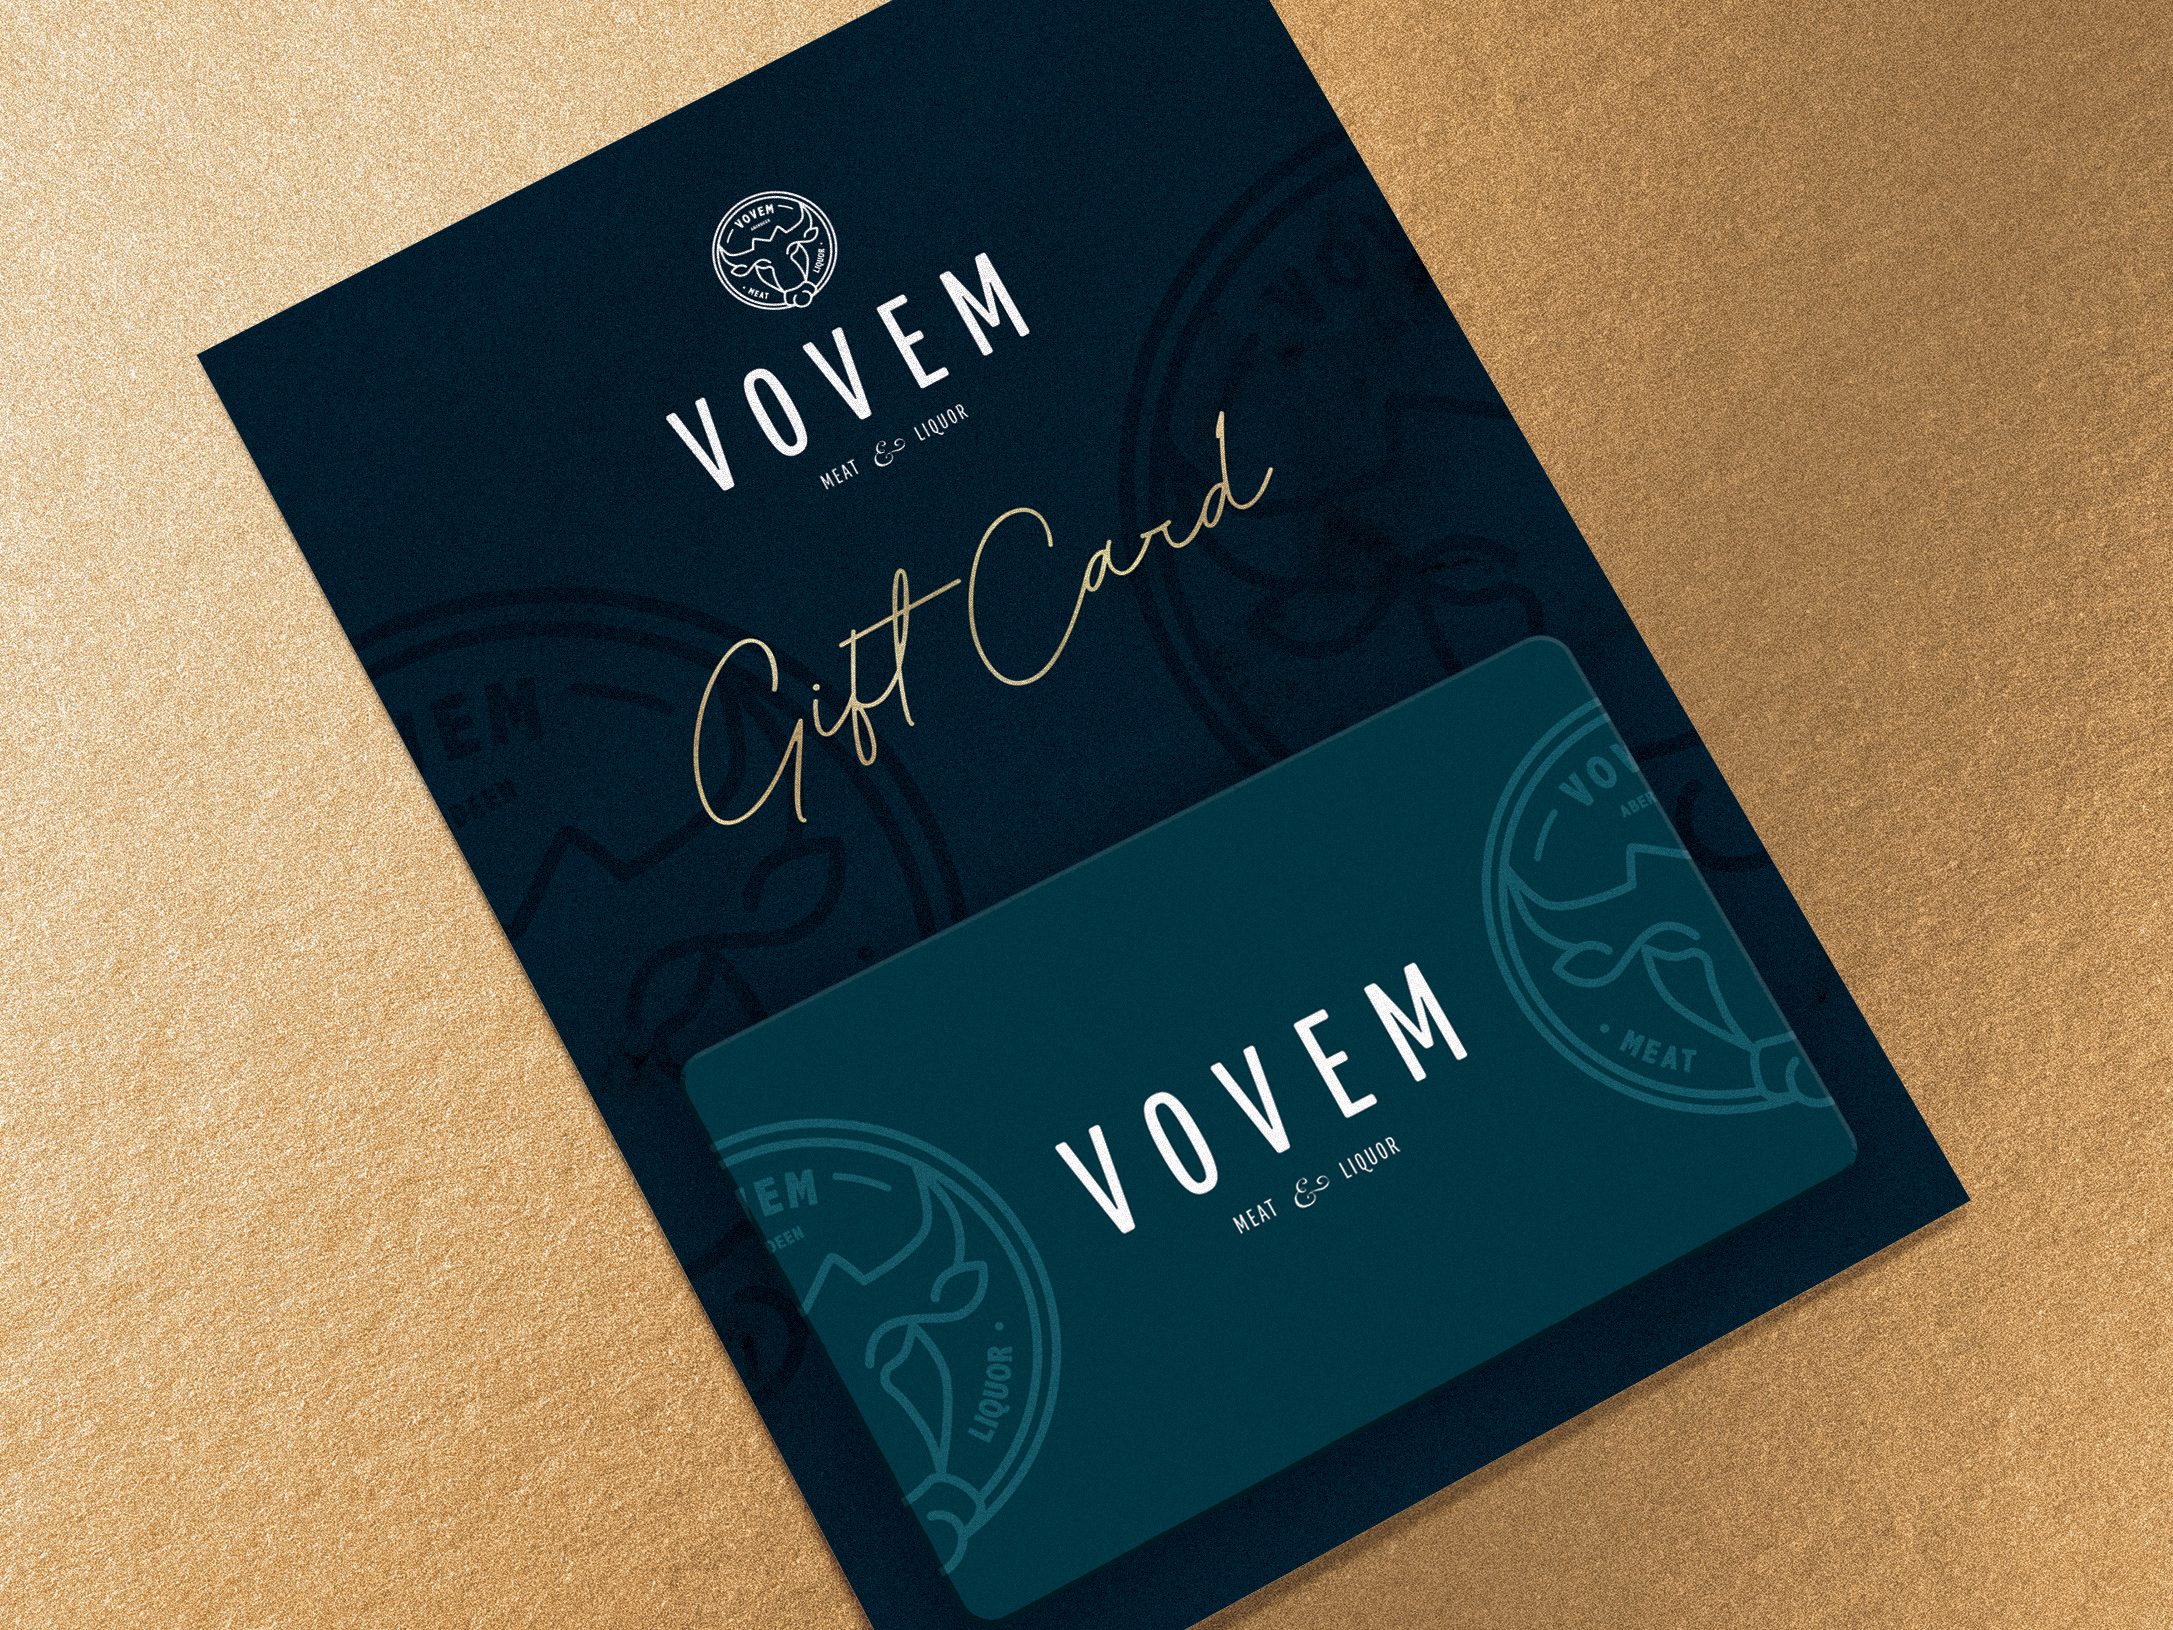 THE PERFECT GIFT THIS FESTIVE SEASON - Do you know someone who loves dining out? Our Vovem Gift Cards make the perfect gift for a foodie this festive season. Available to purchase from Vovem Meat & Liquor during opening hours.